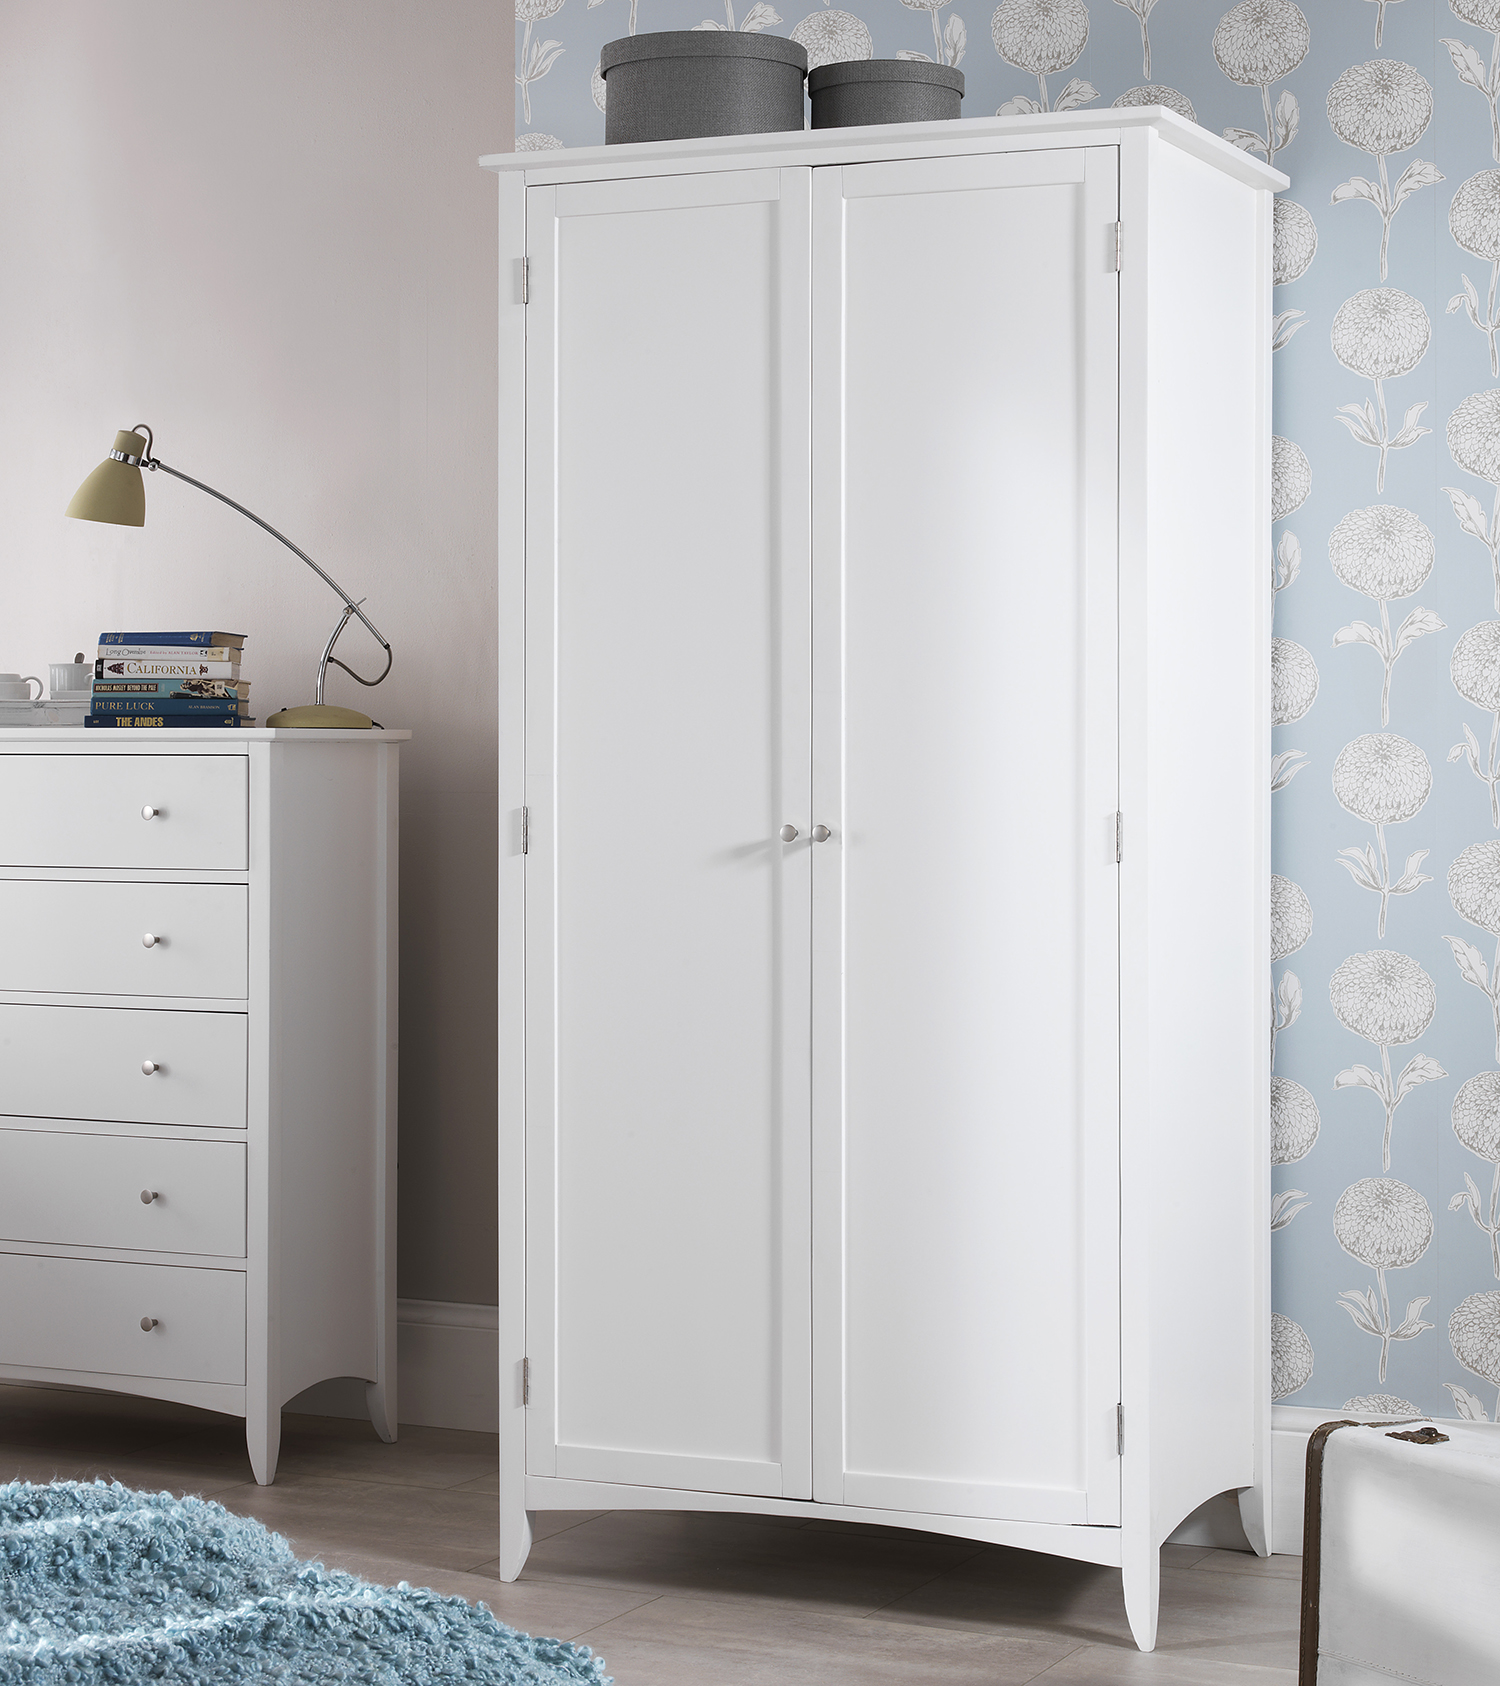 Double Bed With Drawers White